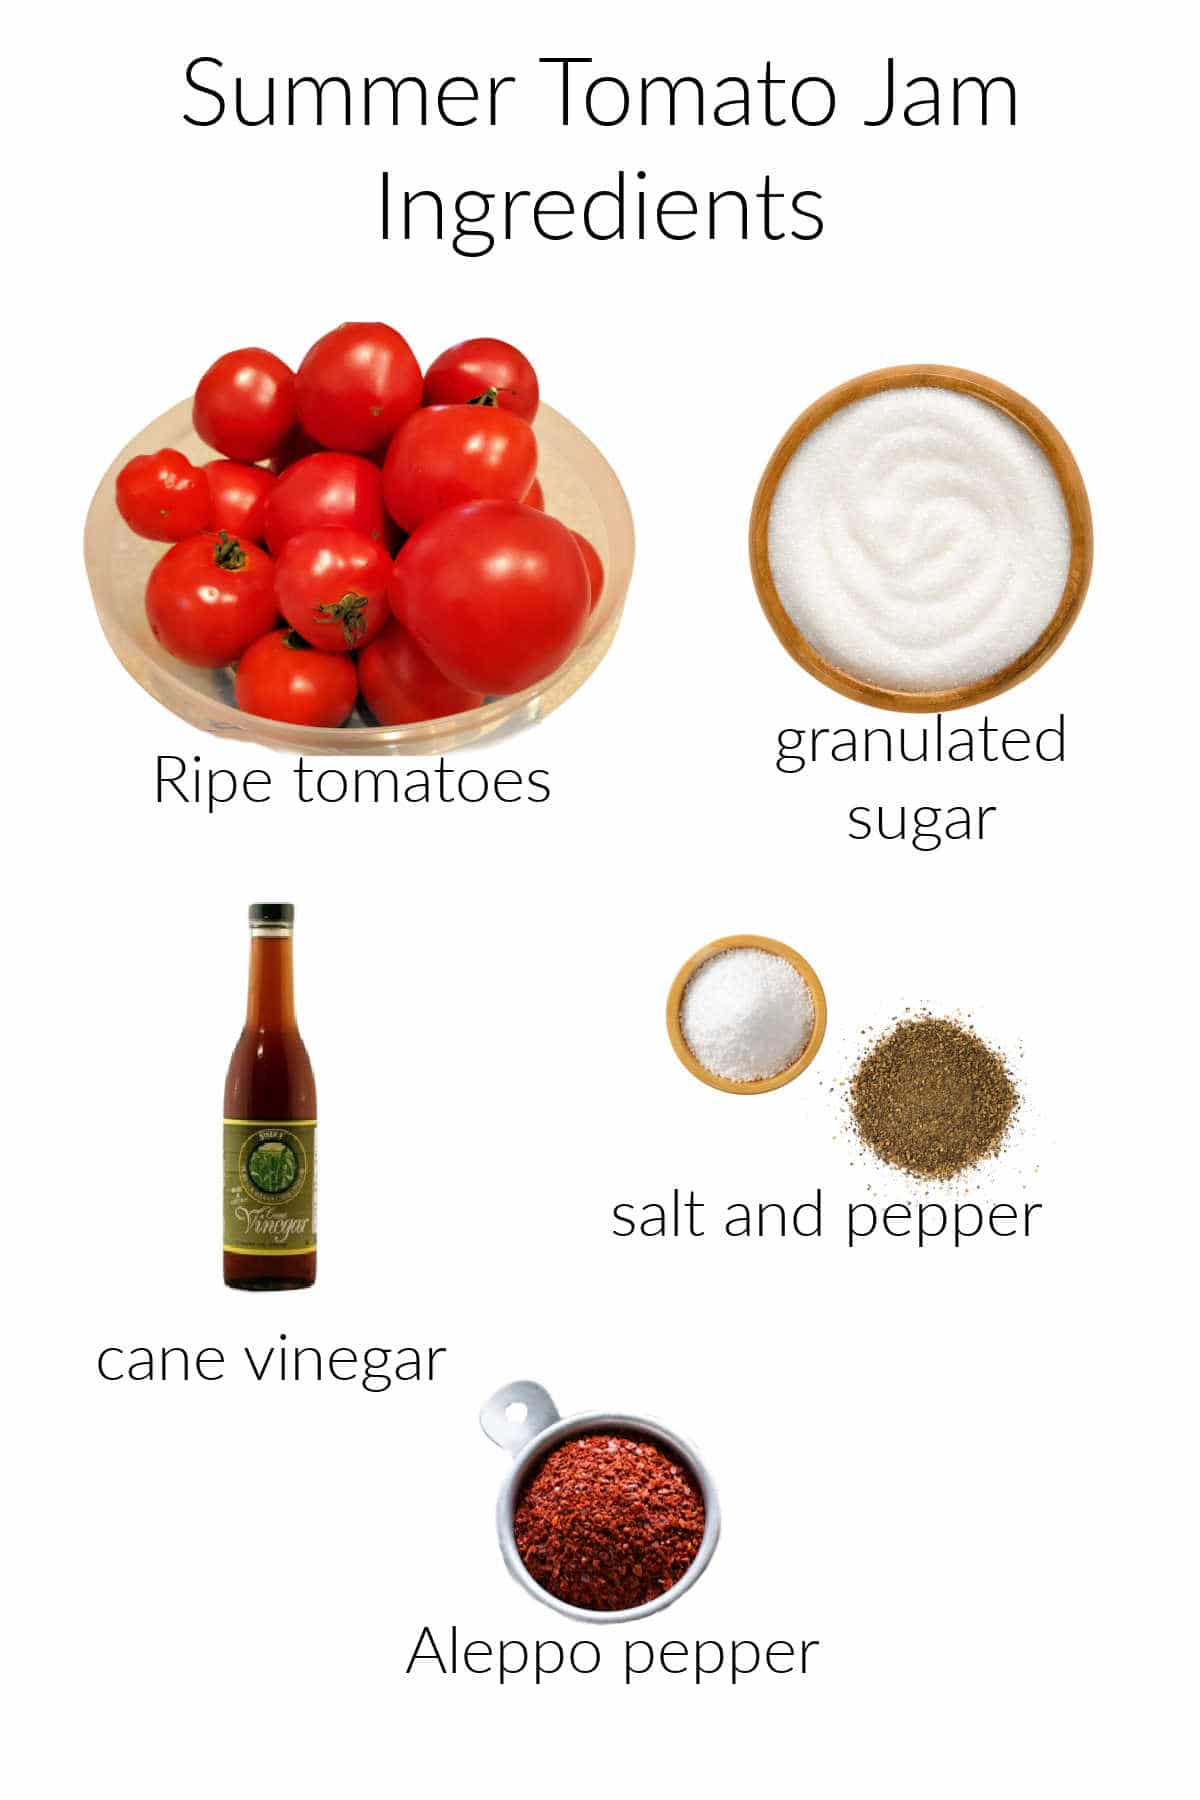 Collage of ingredients for making summer tomato jam: tomatoes, sugar, cane vinegar, salt, pepper, and aleppo pepper.